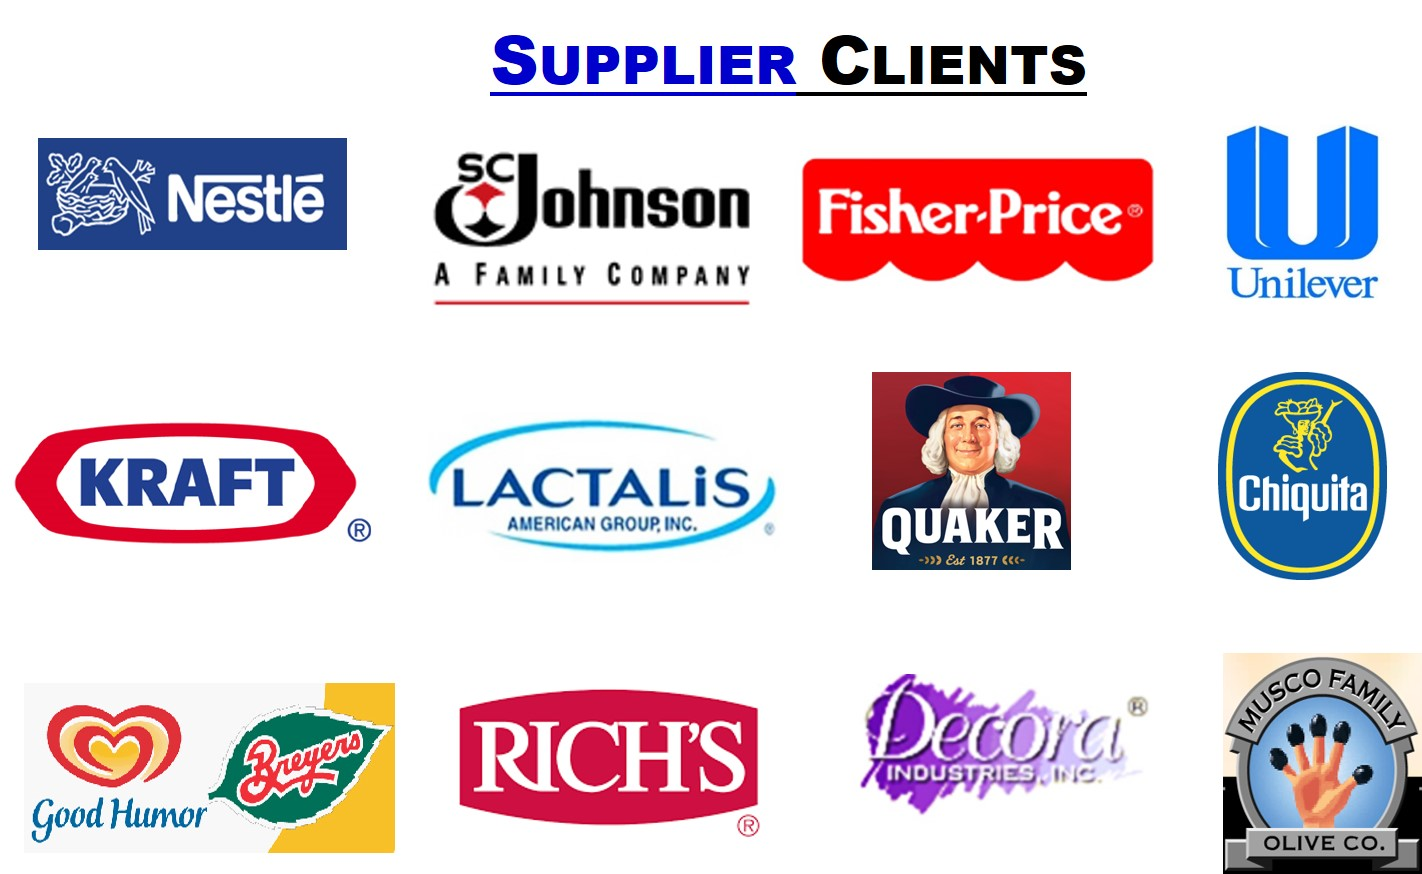 Supplier Clients USED 3 17 16 1